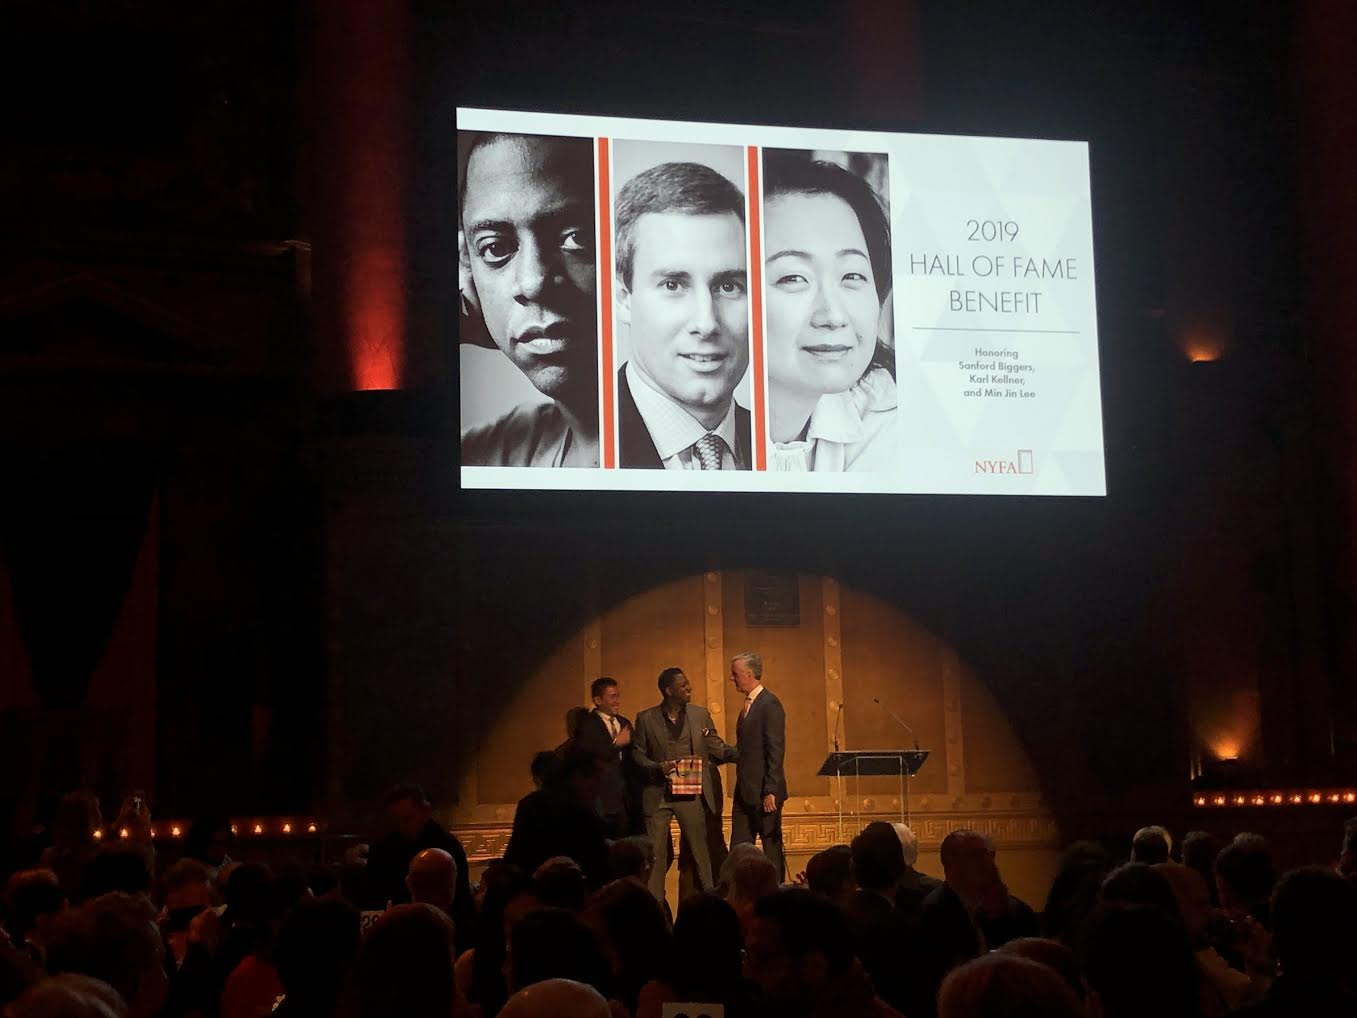 'Because Art Uplifts!': New York Foundation for the Arts Inducts Sanford Biggers, Karl Kellner, Min Jin Lee to Hall of Fame